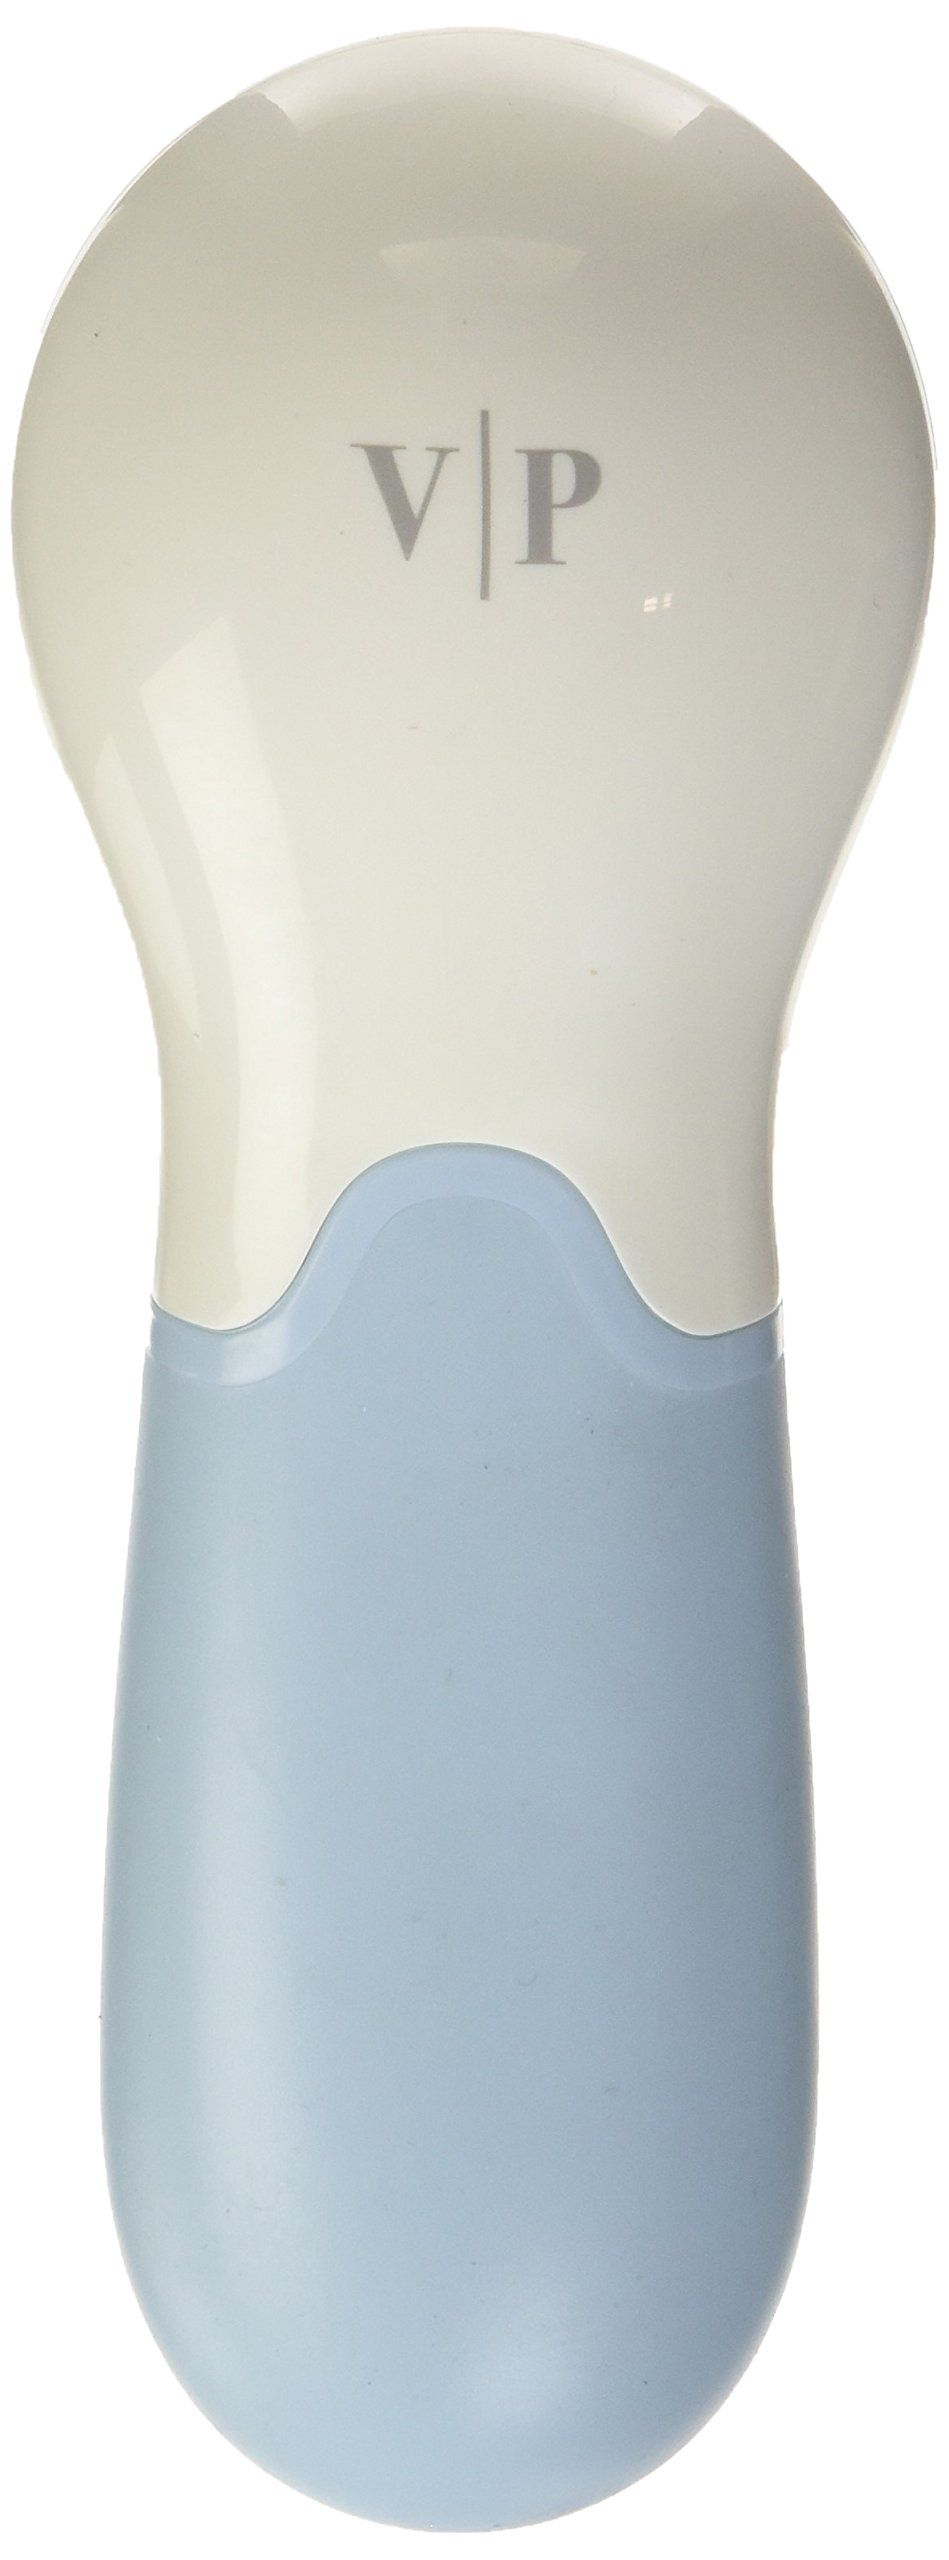 Vanity VP332150600 Pure Spin Facial Cleansing Brush